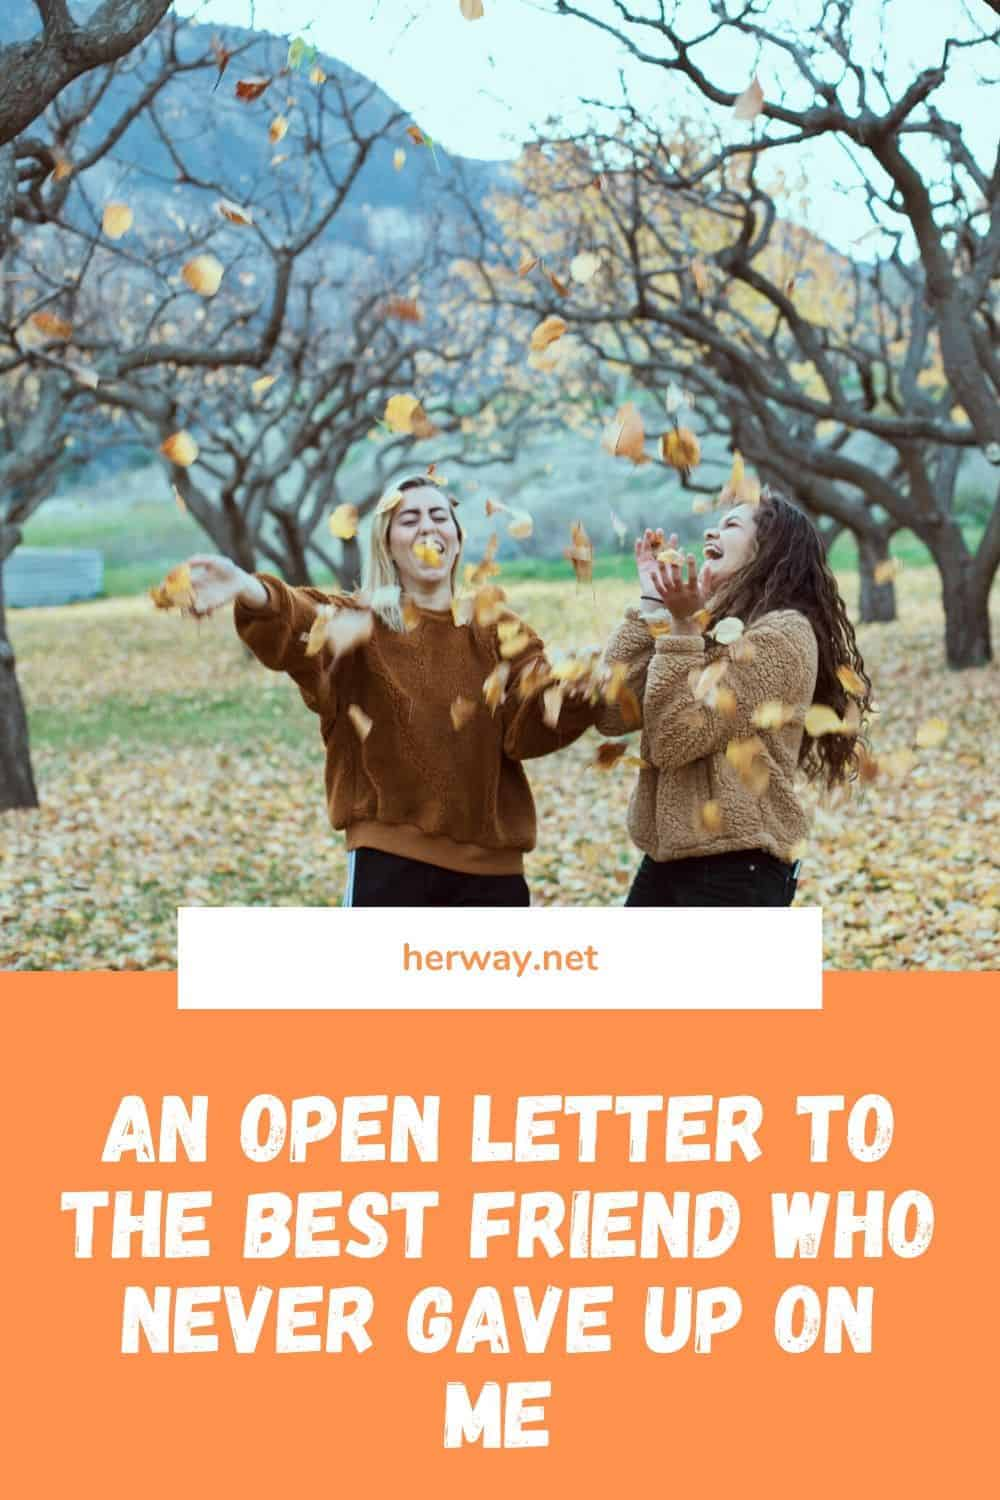 An Open Letter To The Best Friend Who Never Gave Up On Me